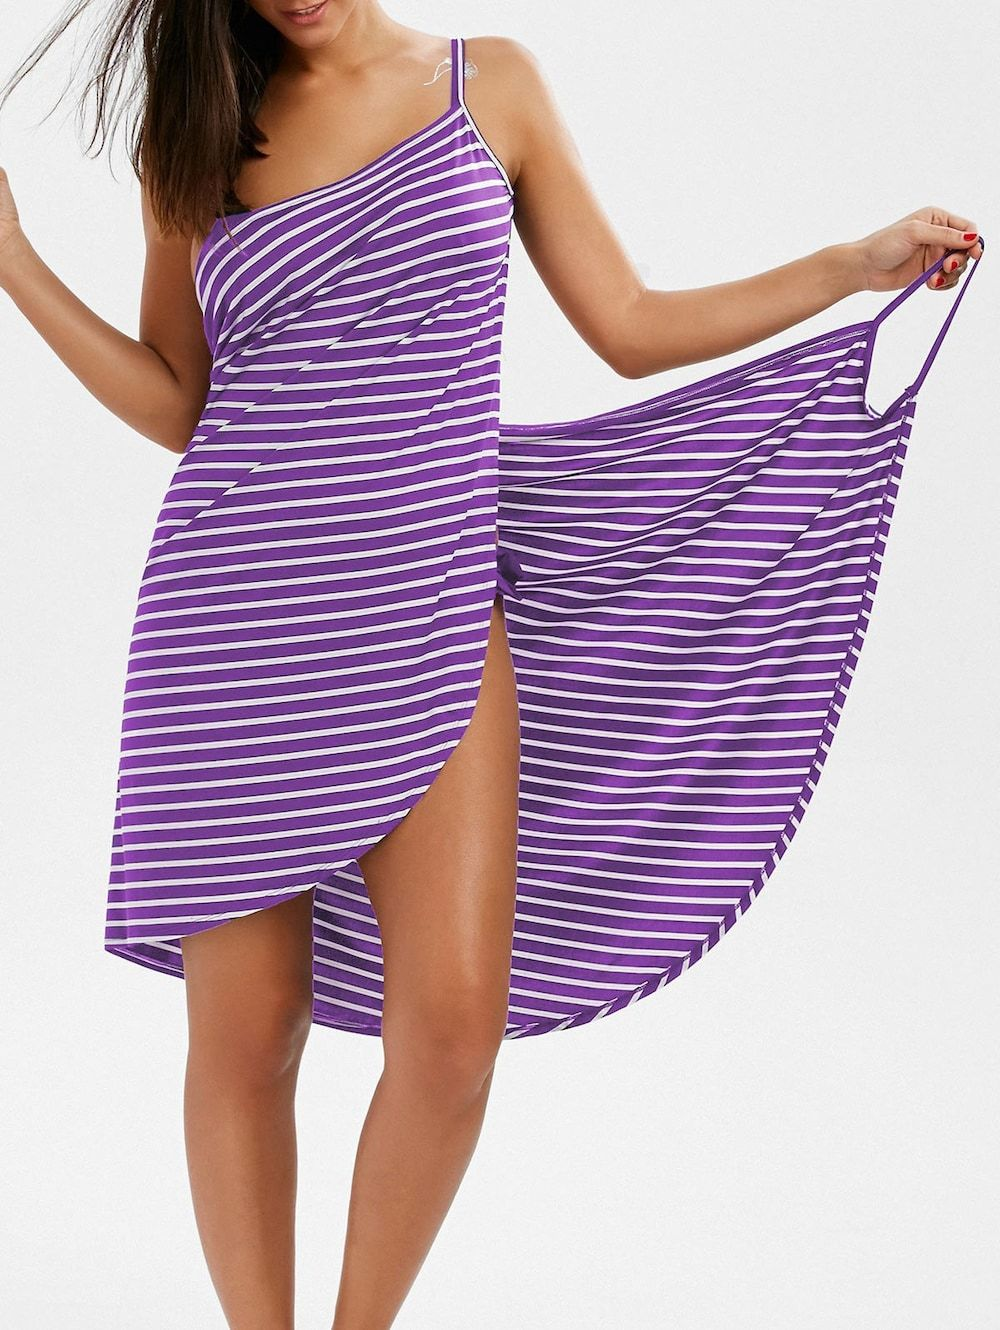 7846c0f0cec75 Cheap Fashion online retailer providing customers trendy and stylish  clothing including different categories such as dresses, tops, swimwear.